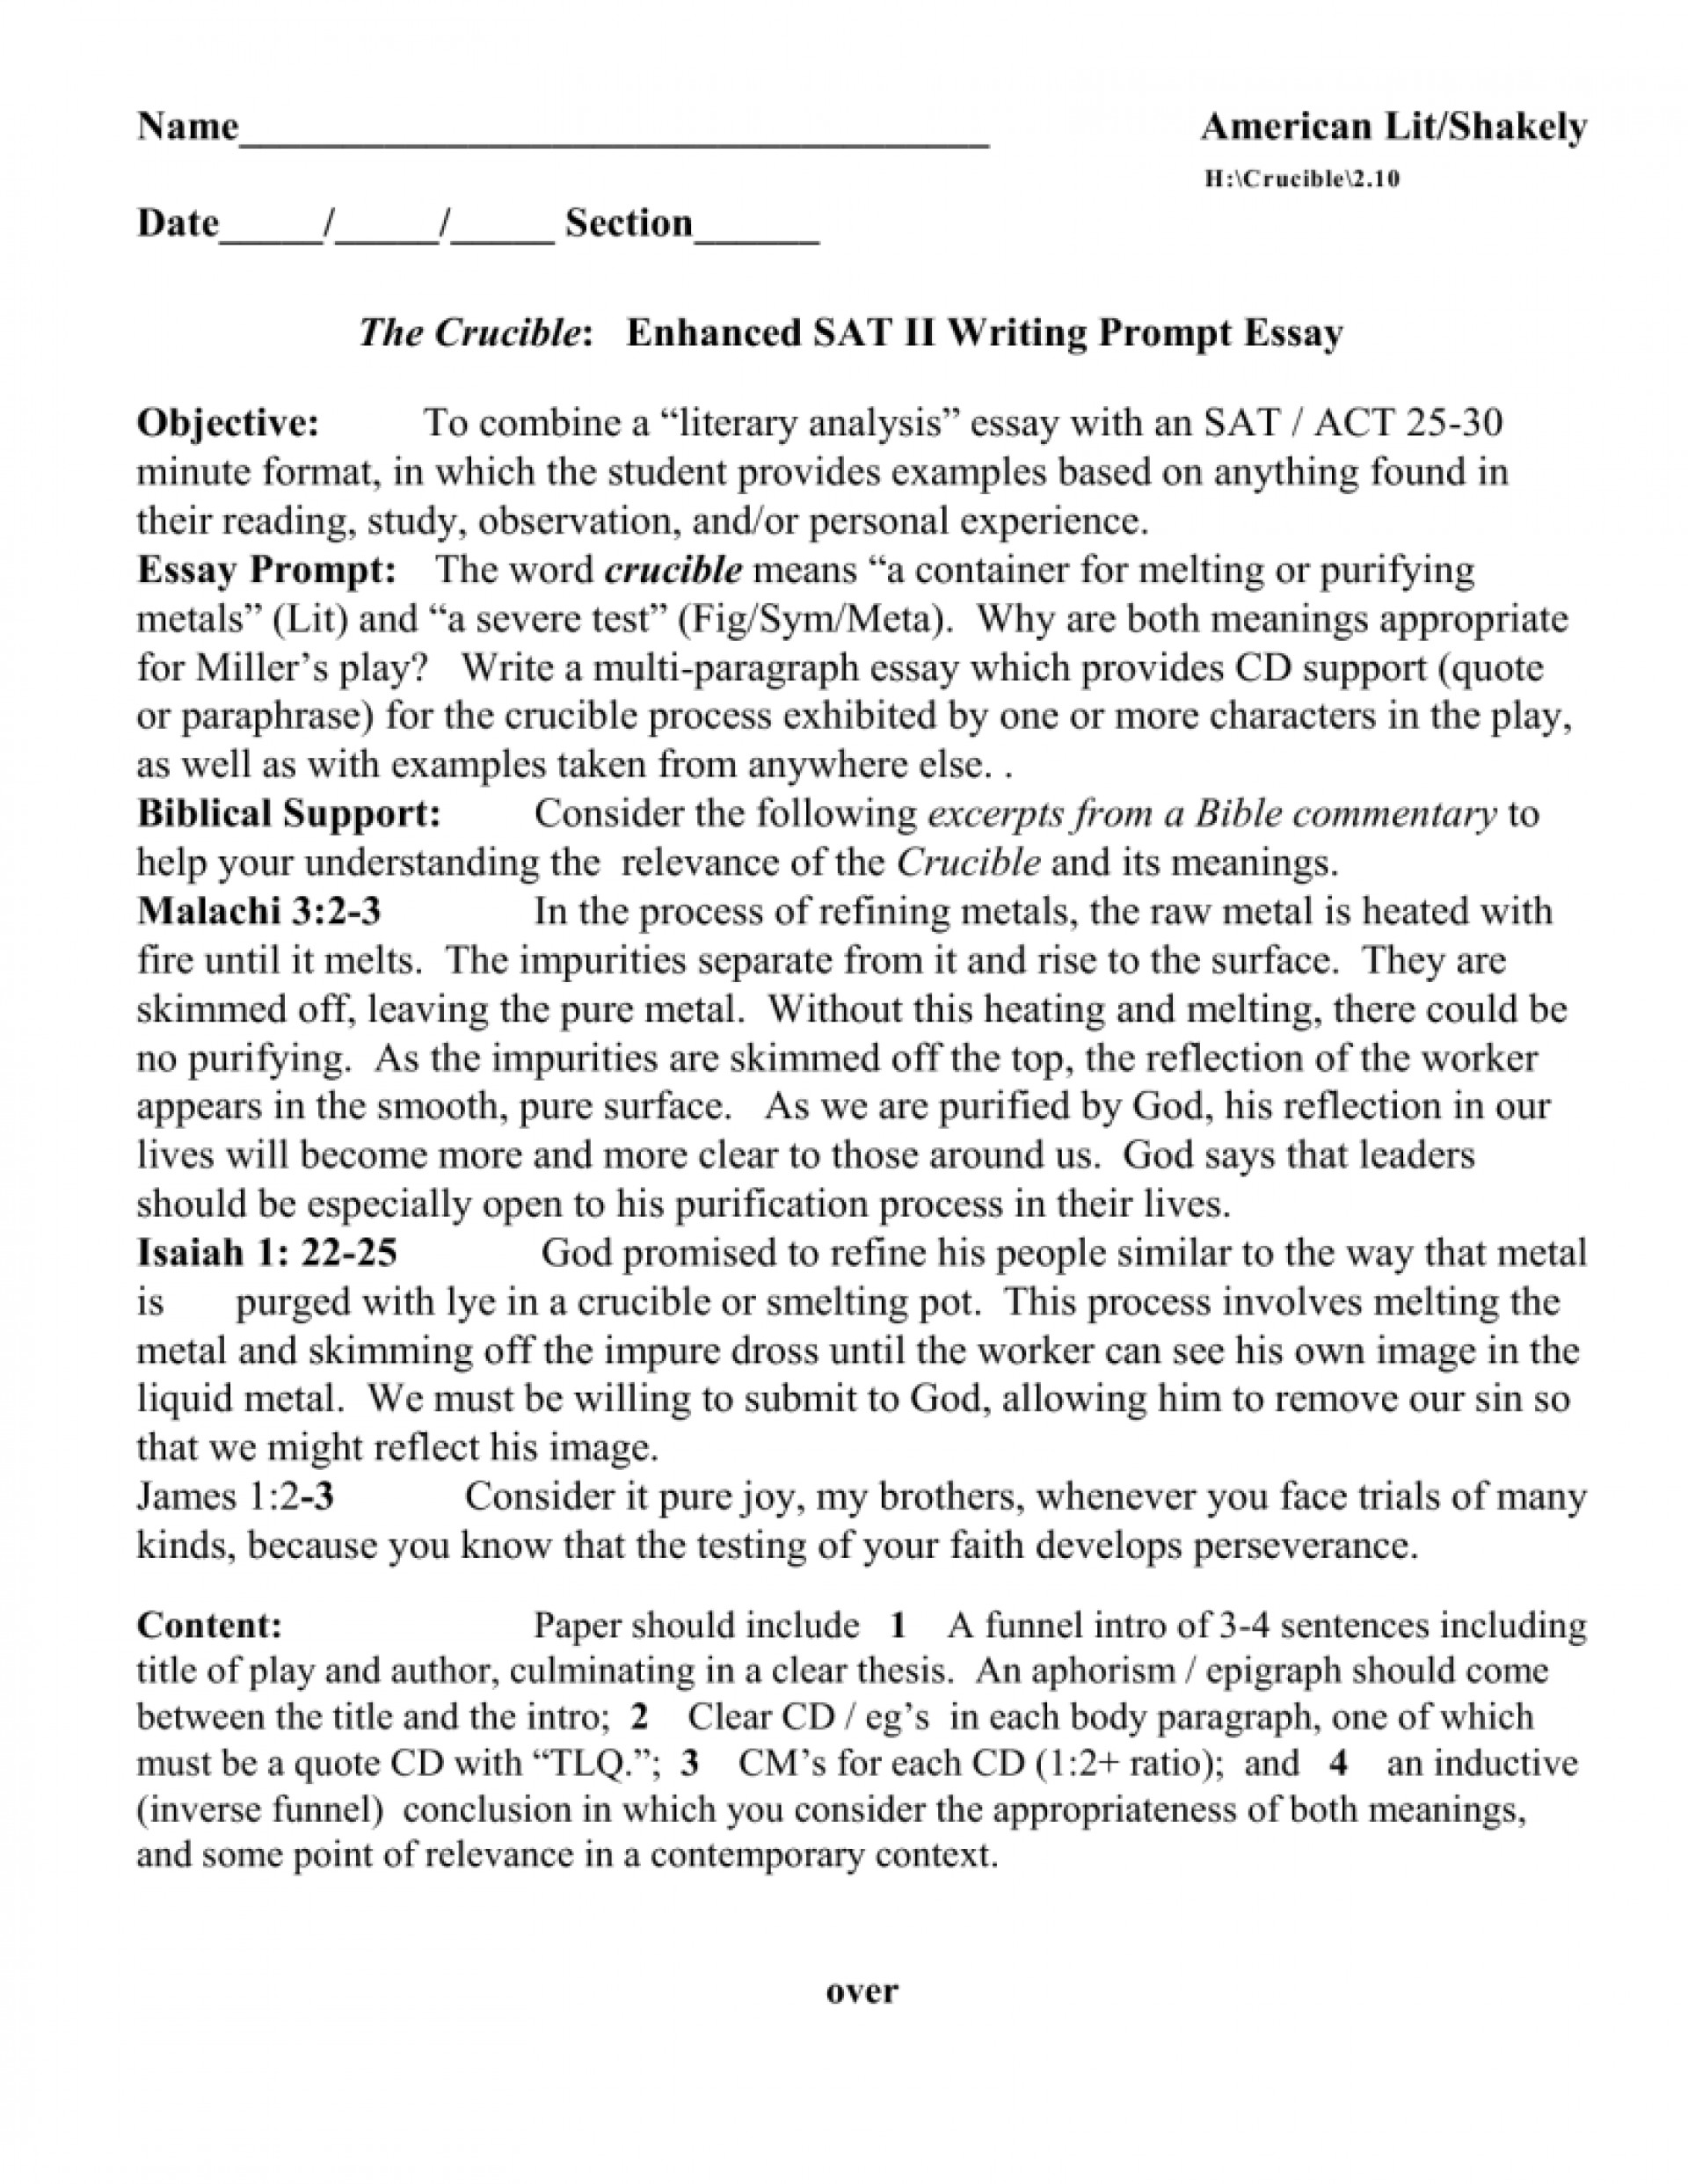 004 Ssat Essay Examples Poemdoc Or Writing Sample Prompts Example Sat Essays How To Get Perfect L Prompt Unforgettable And Responses New 1920